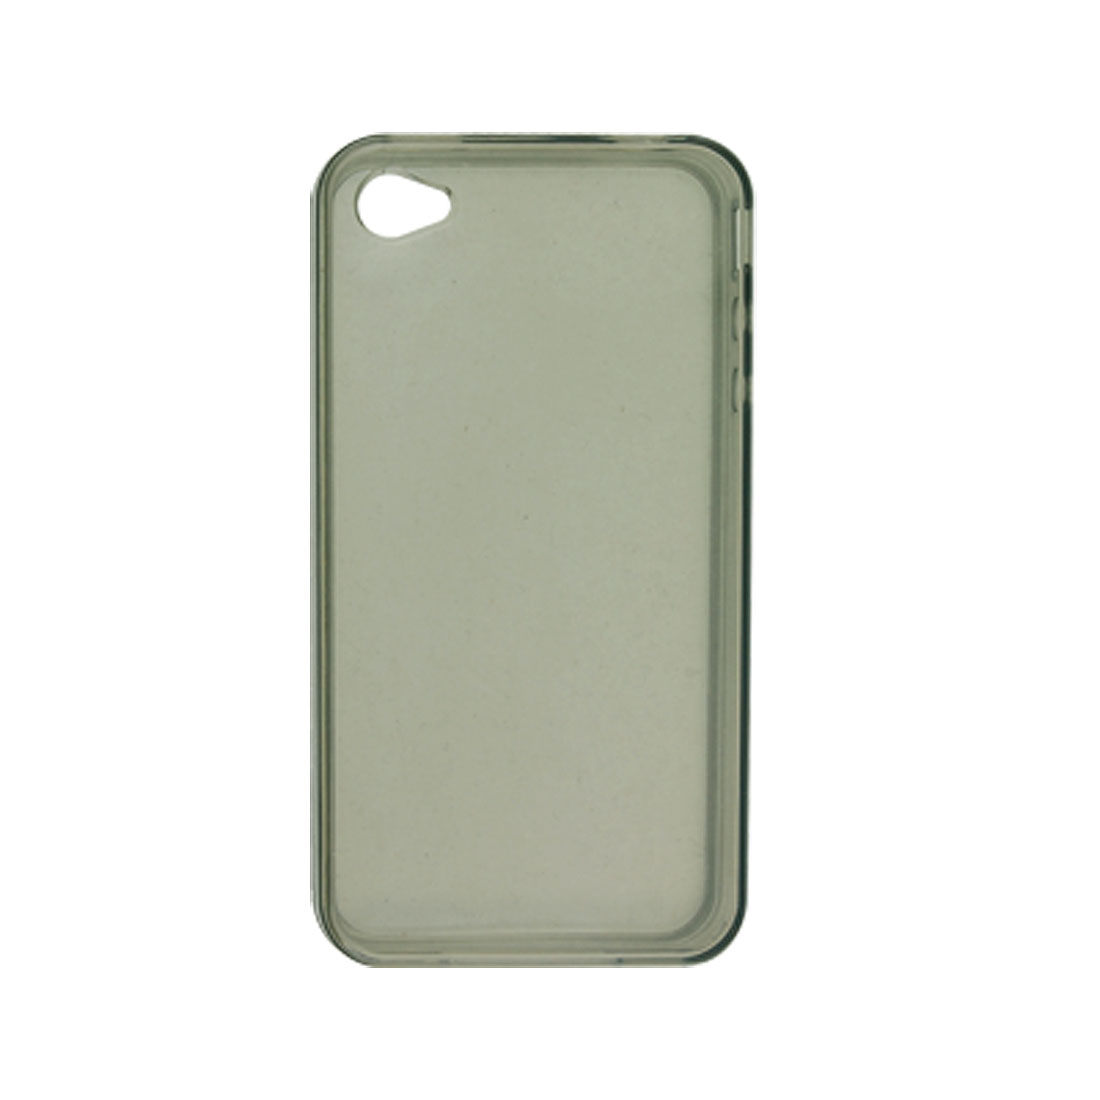 Clear Grey Soft Plastic Skin Case Protector for Apple iPhone 4 4G